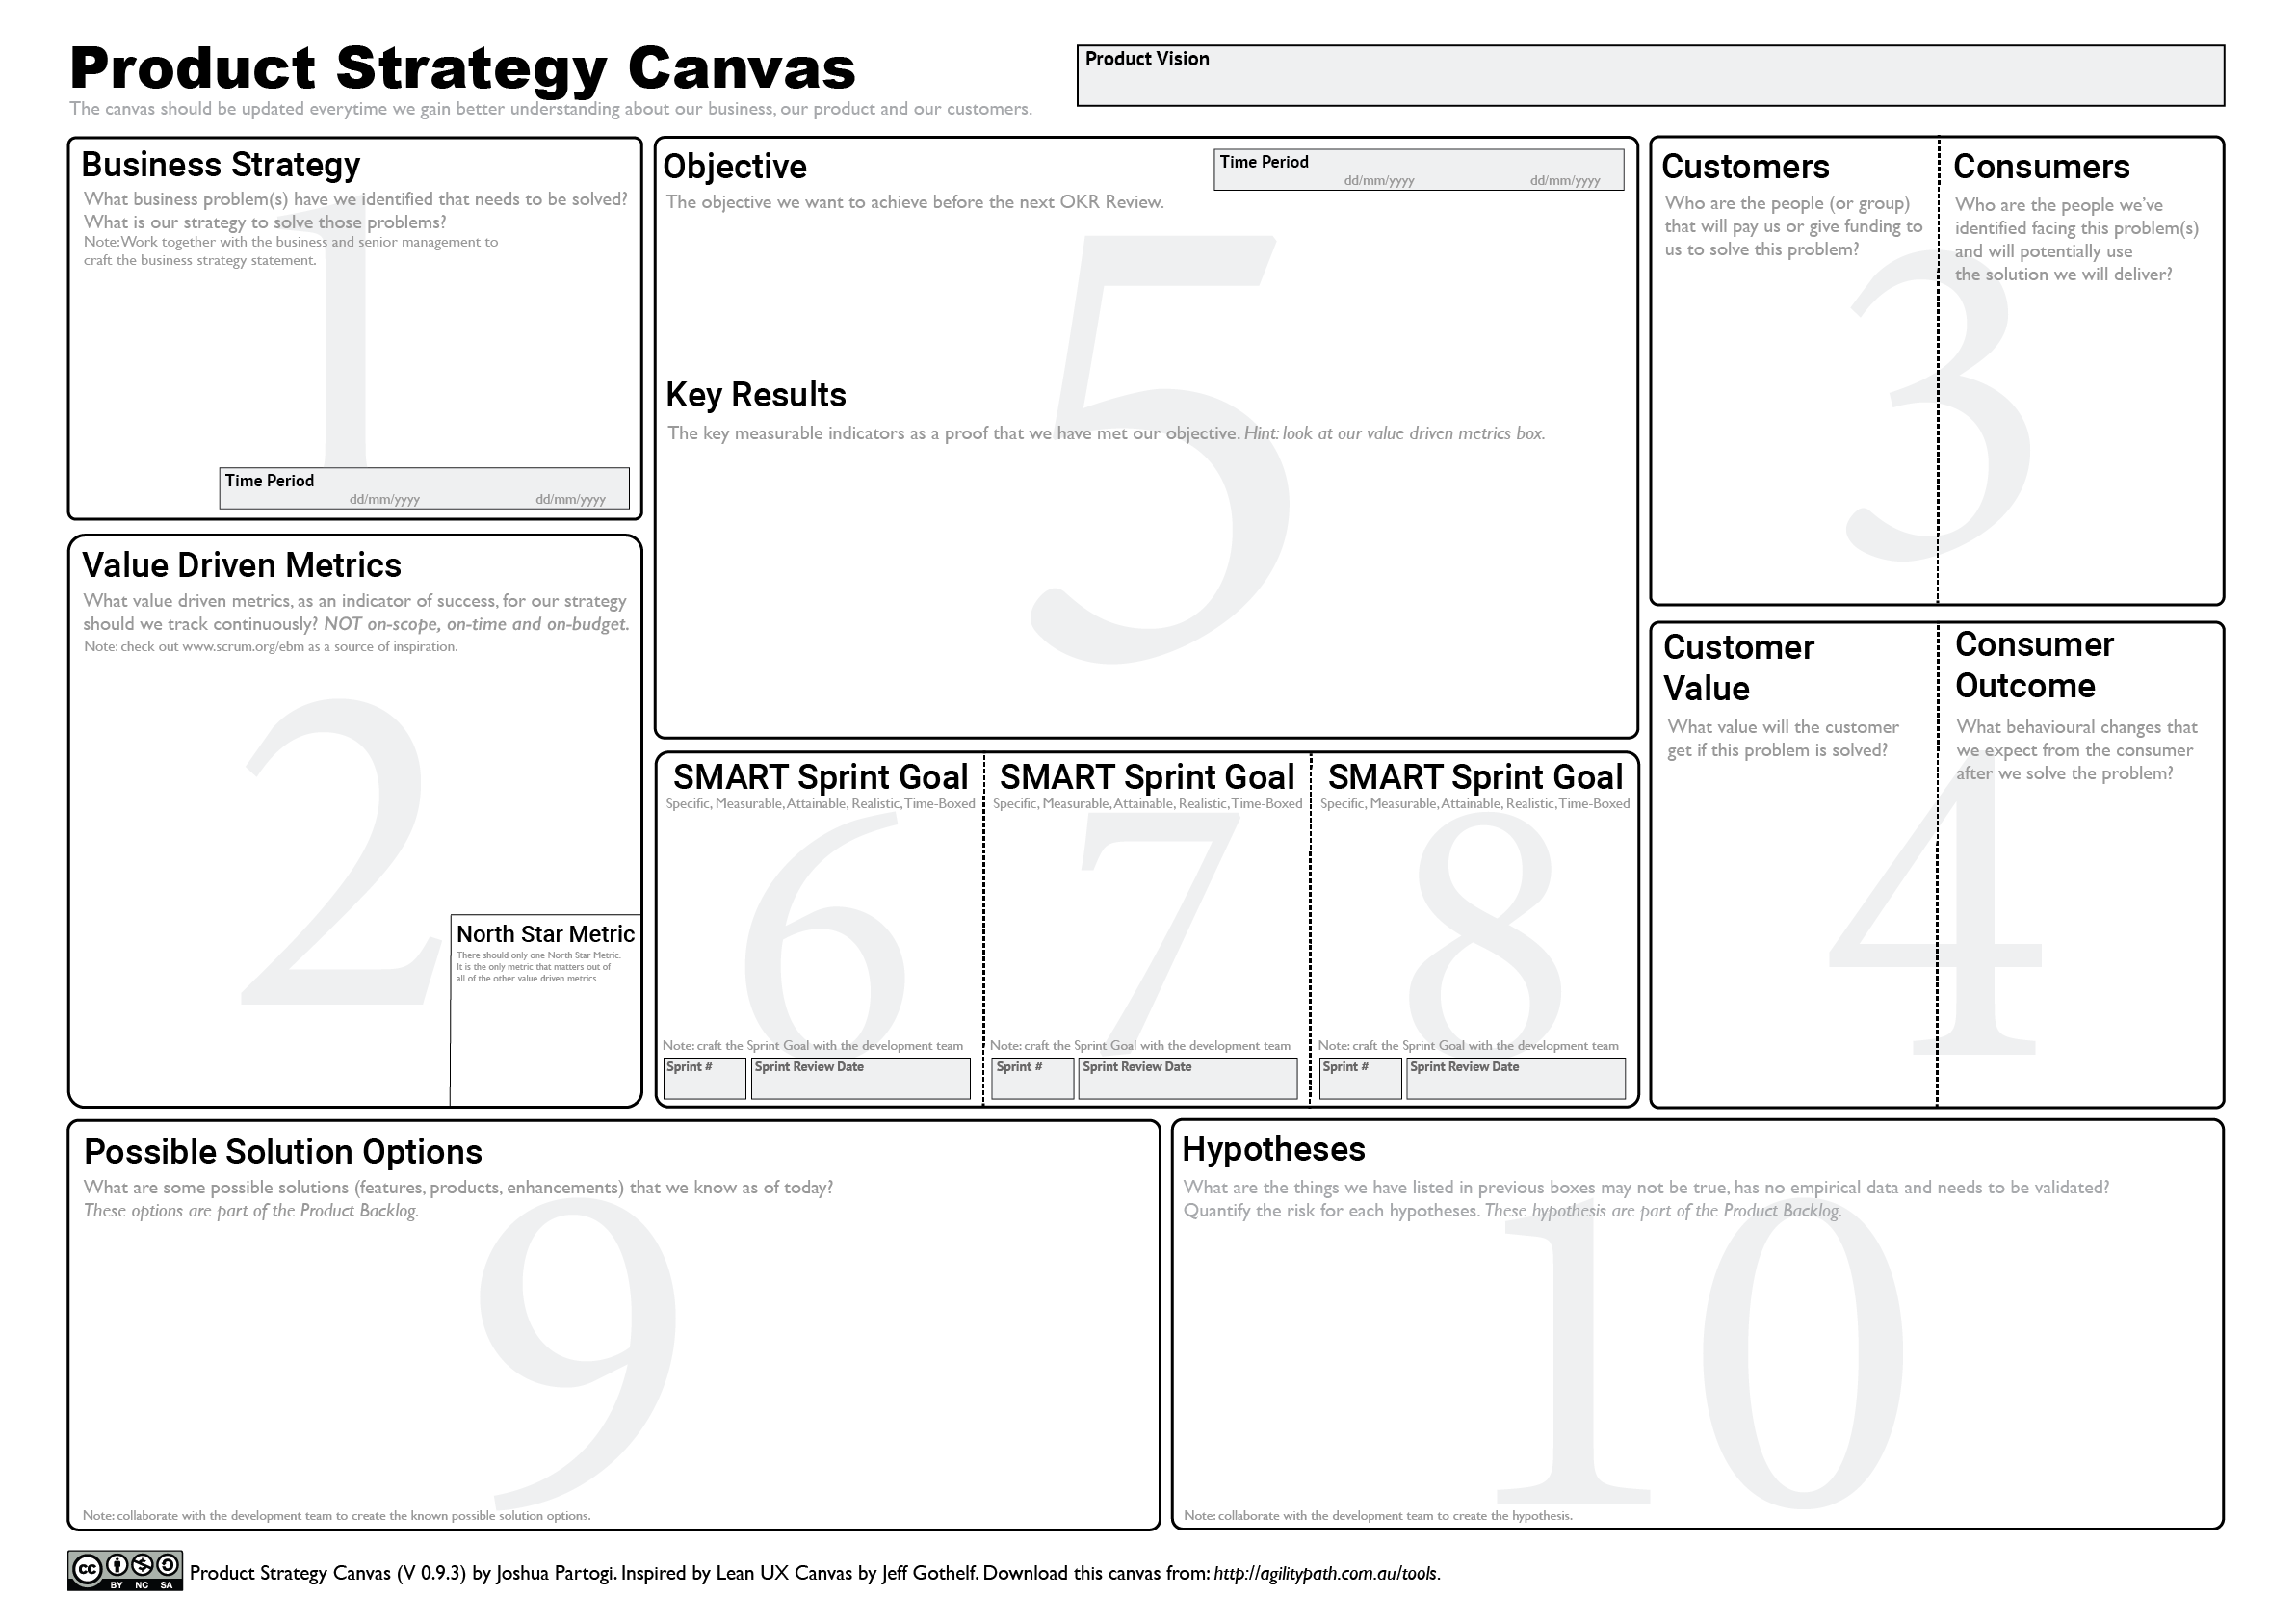 How to Align Your Product Strategy Using the Product Strategy Canvas (Part 1)